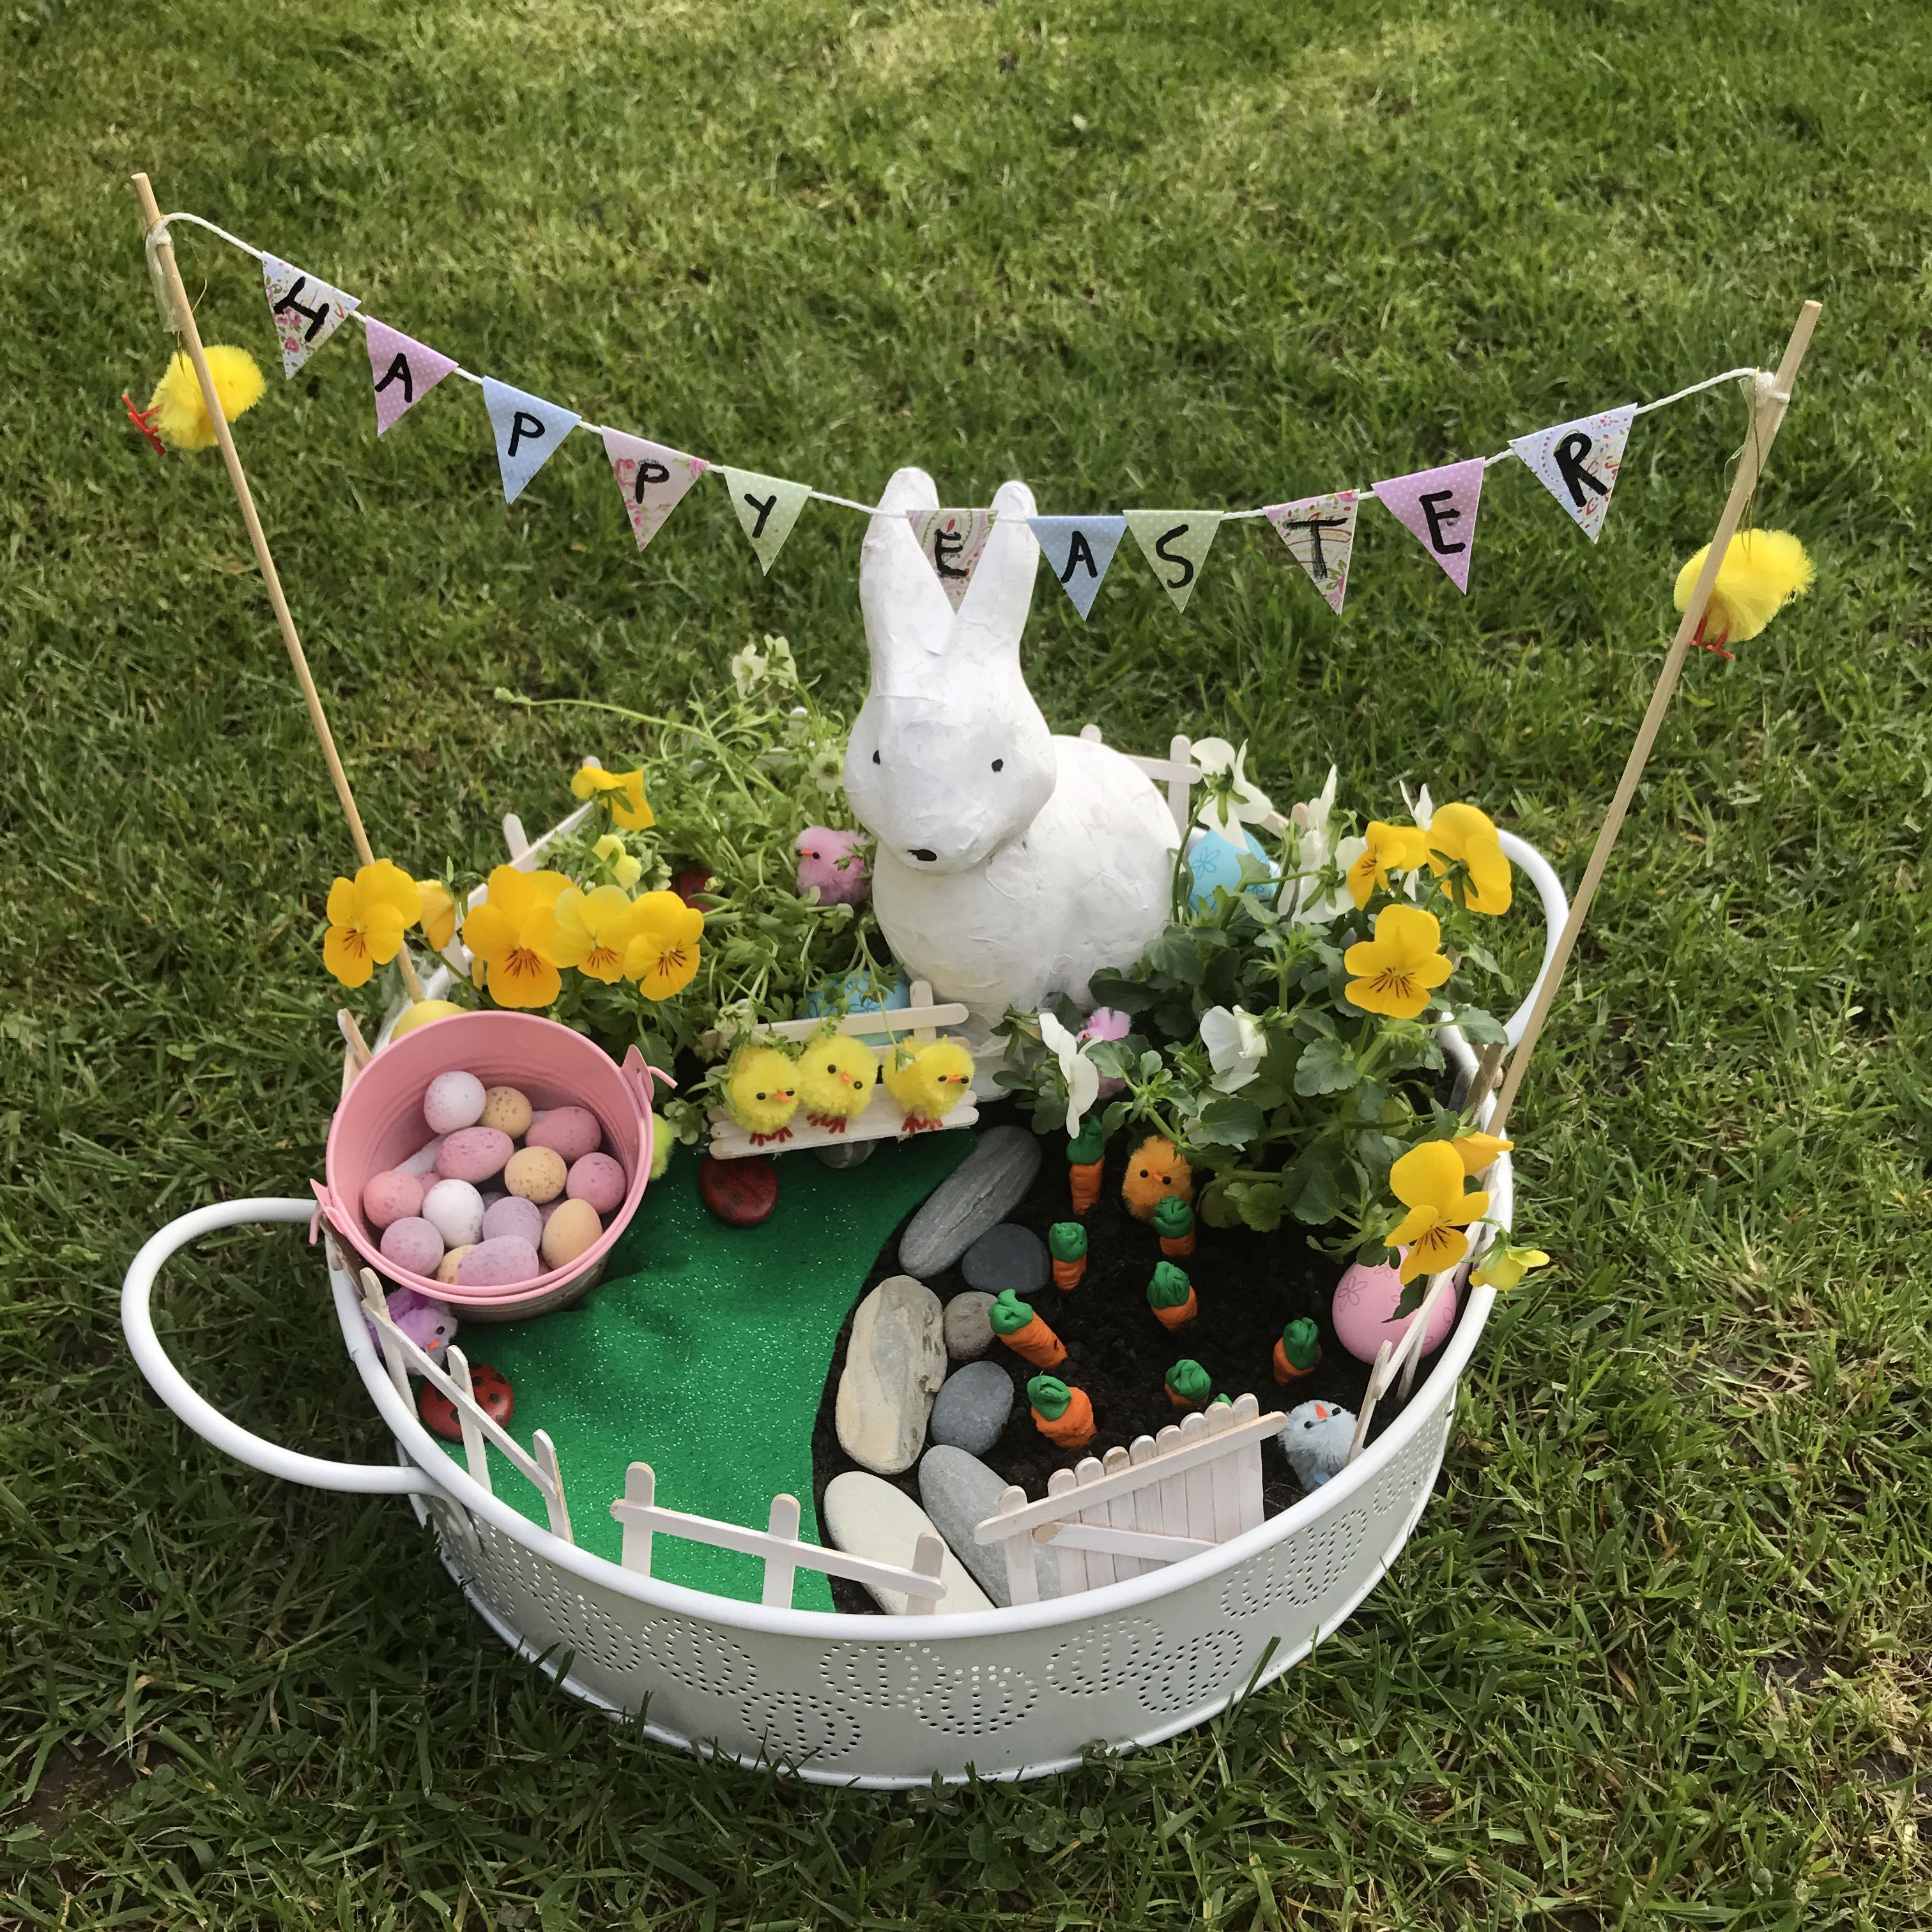 Miniature Easter Garden With Easter Bunny, Easter Egg Hunt And